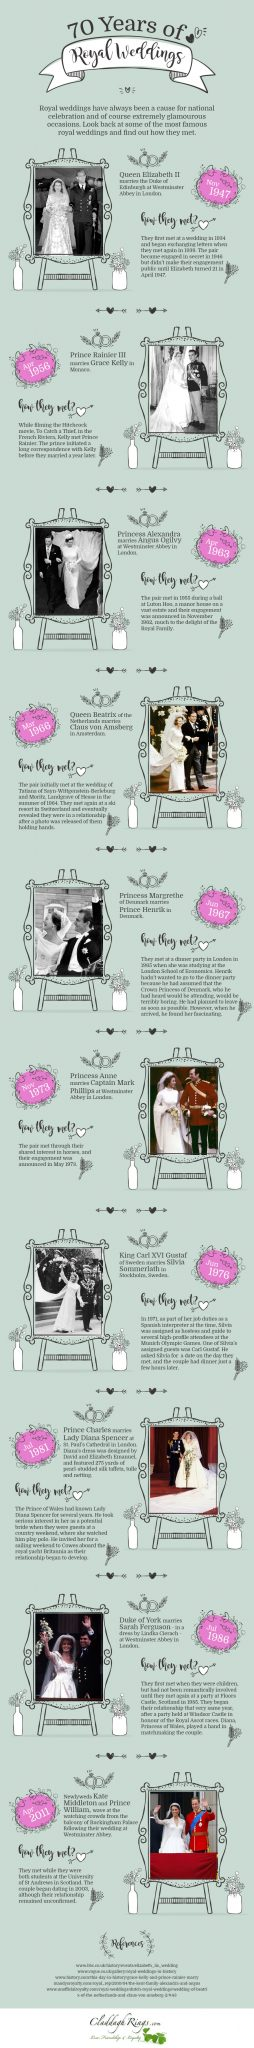 70 Years of Royal Weddings Infographic